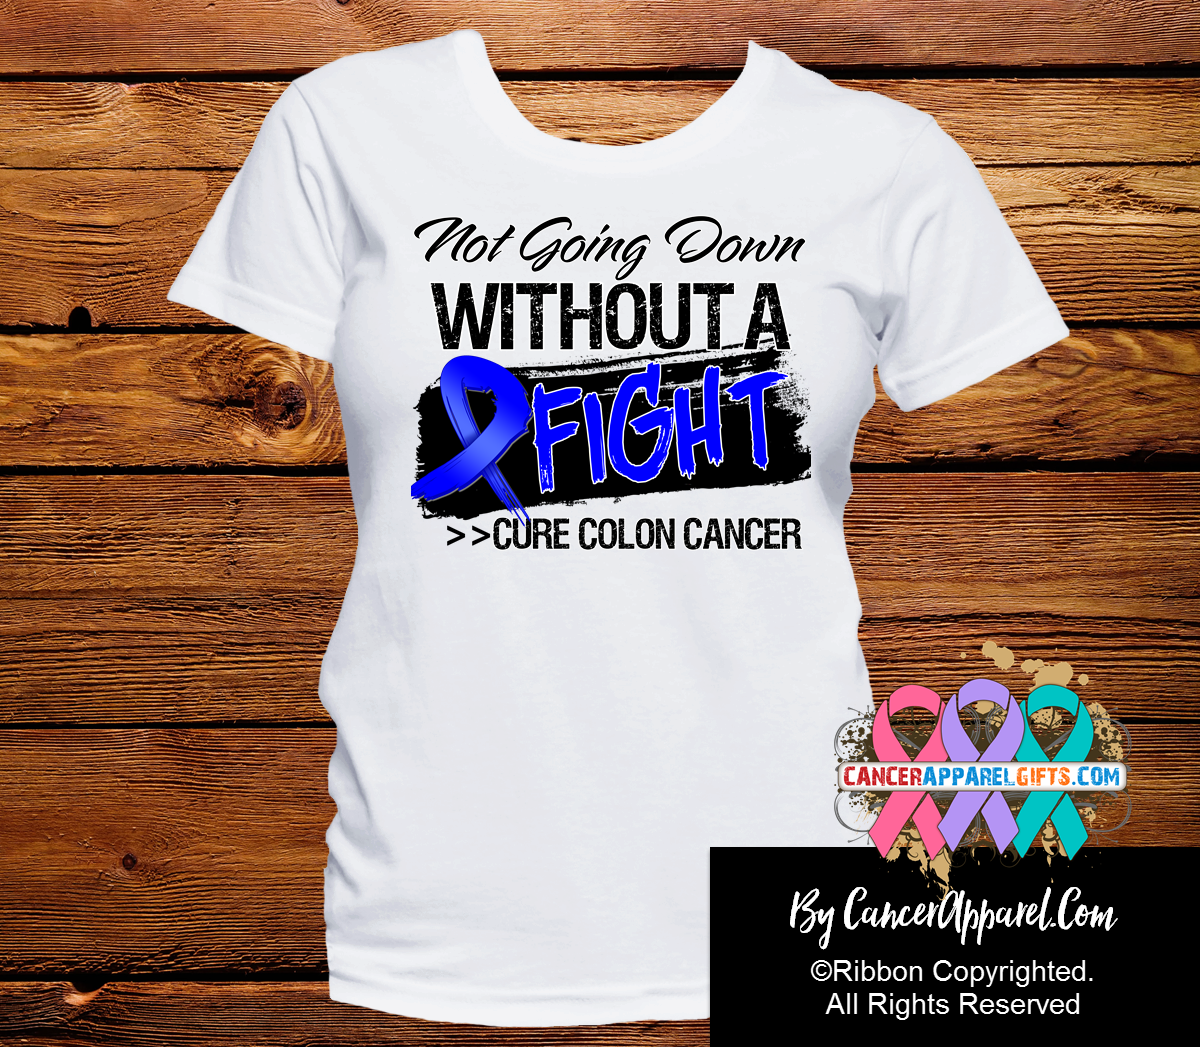 Colon Cancer Not Going Down Without A Fight Shirts Cancer Apparel Gifts At Shopify